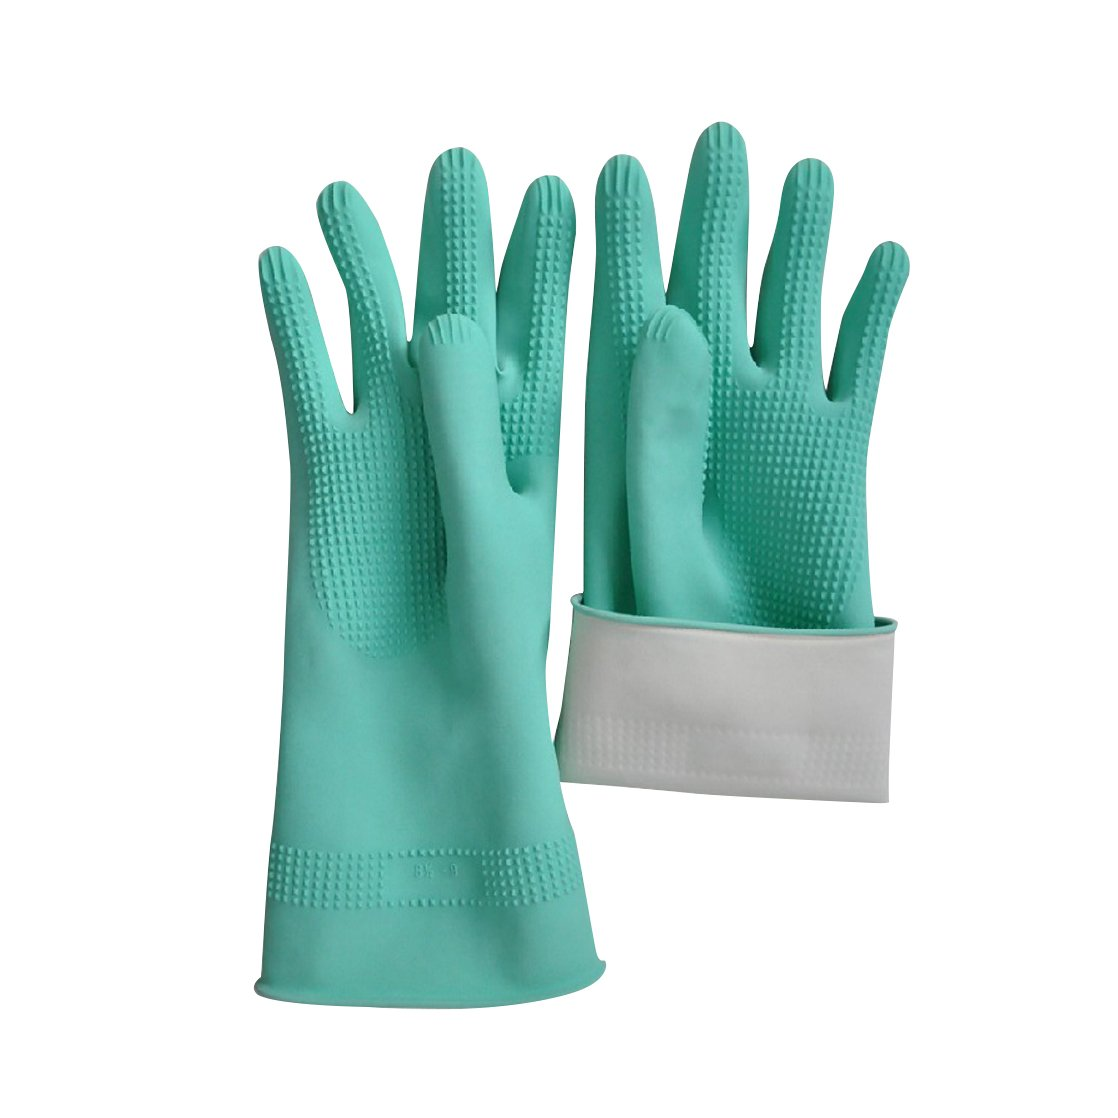 1=2 Riverbyland Green Waterproof Rubber Gloves Pack of 3 Pairs